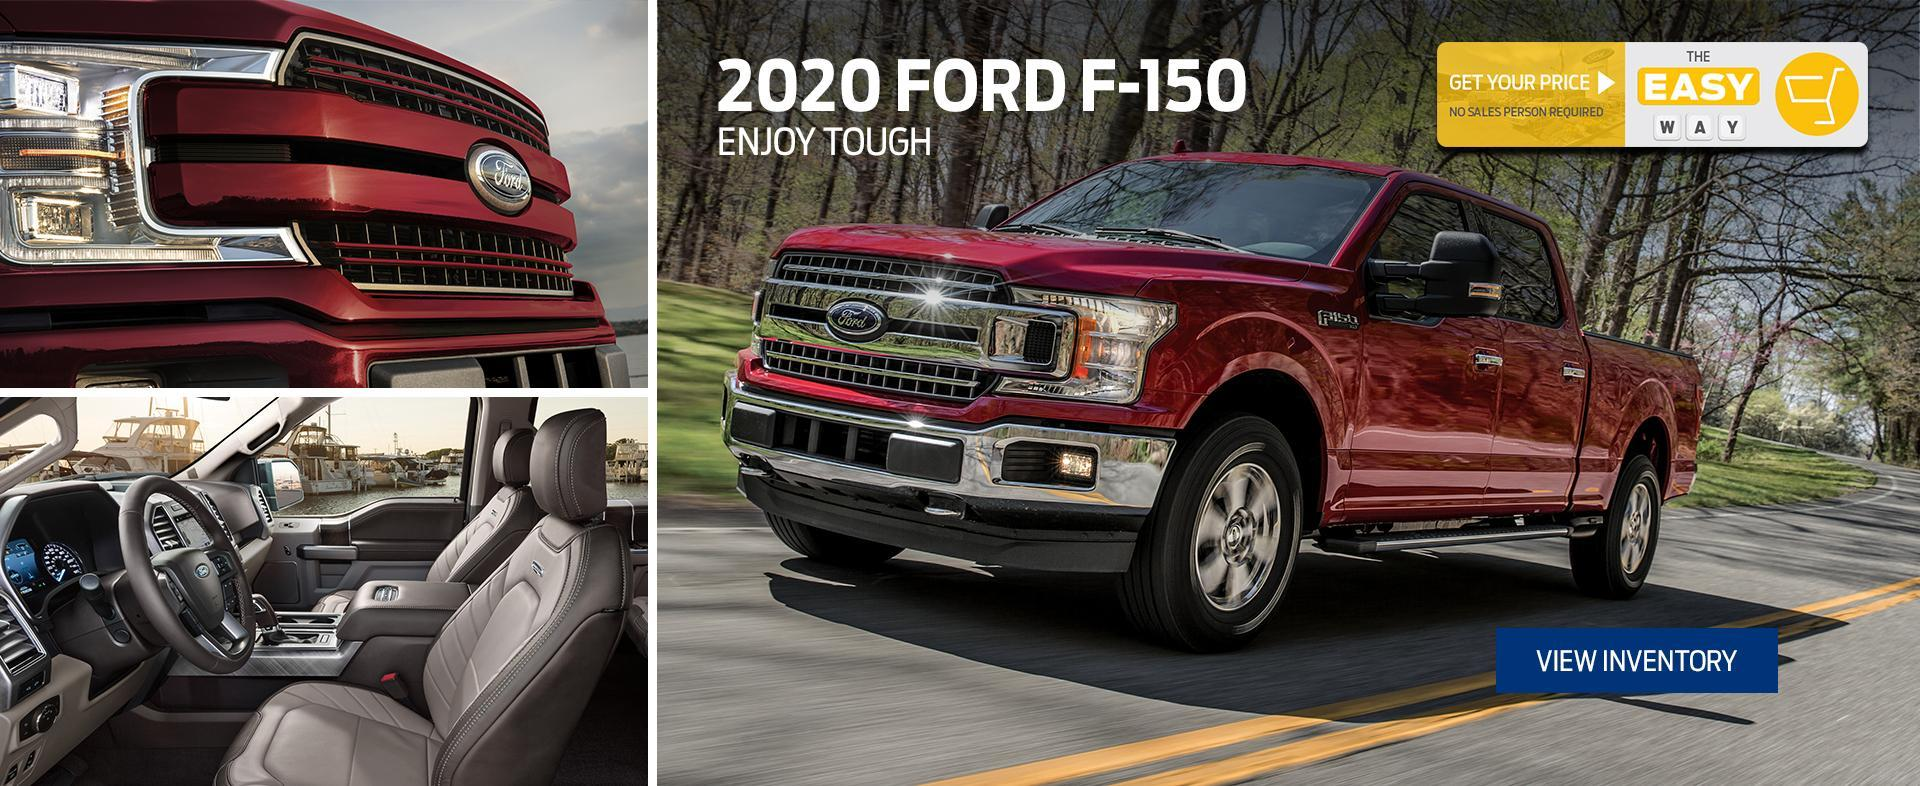 2020 F-150 Kamloops Dearborn Ford image